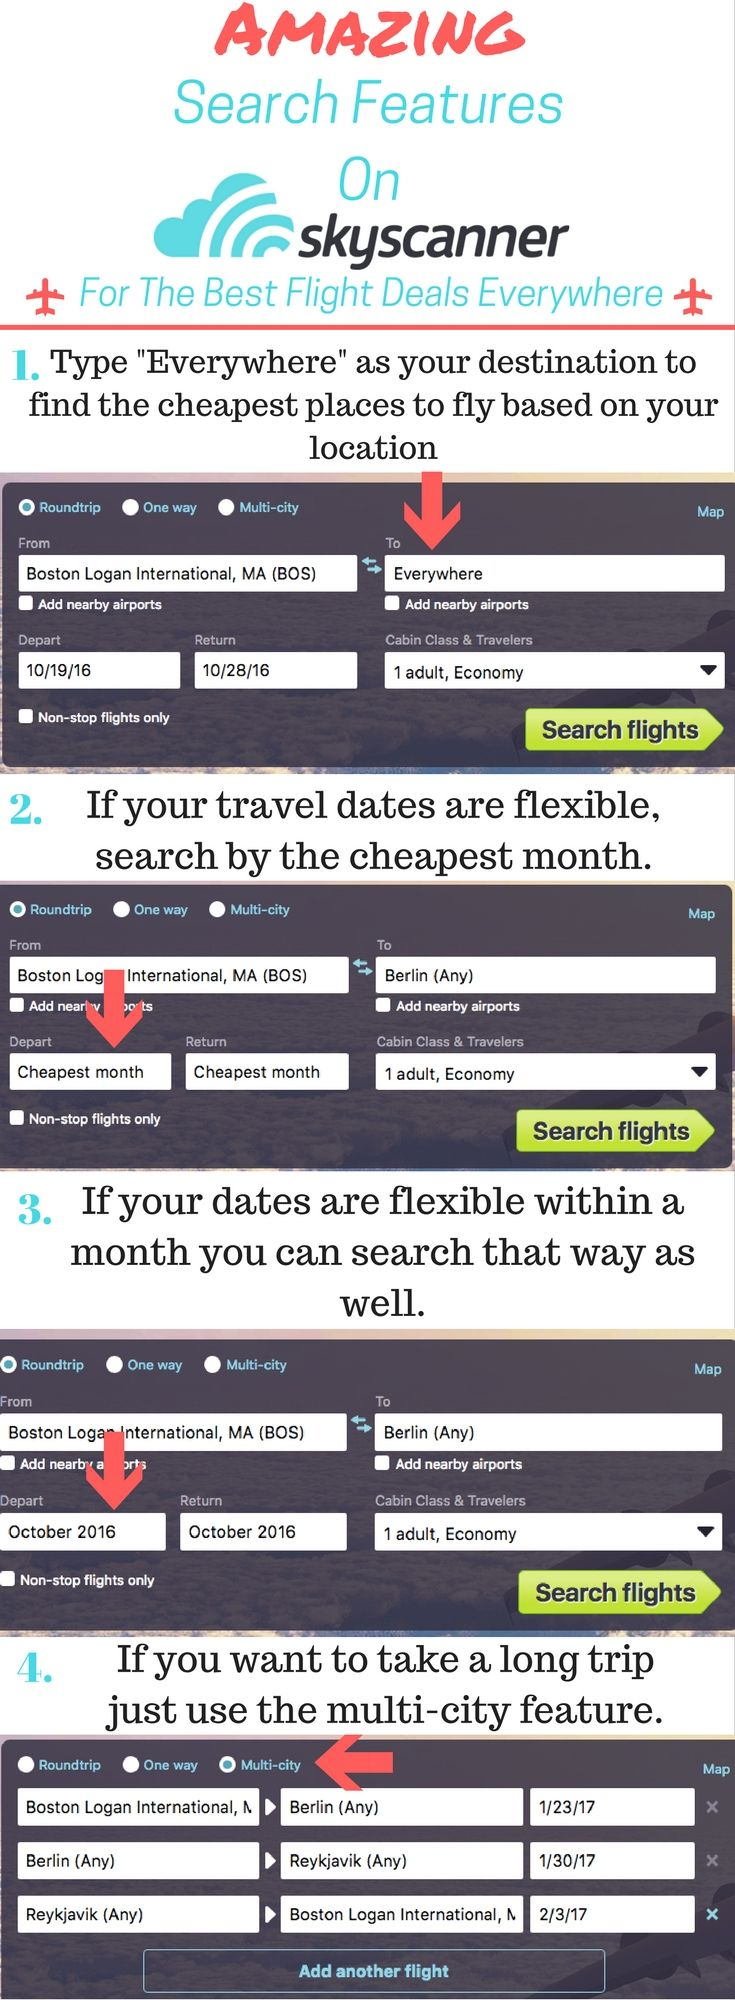 Reasons why #Skyscanner is my go to #flight search engine